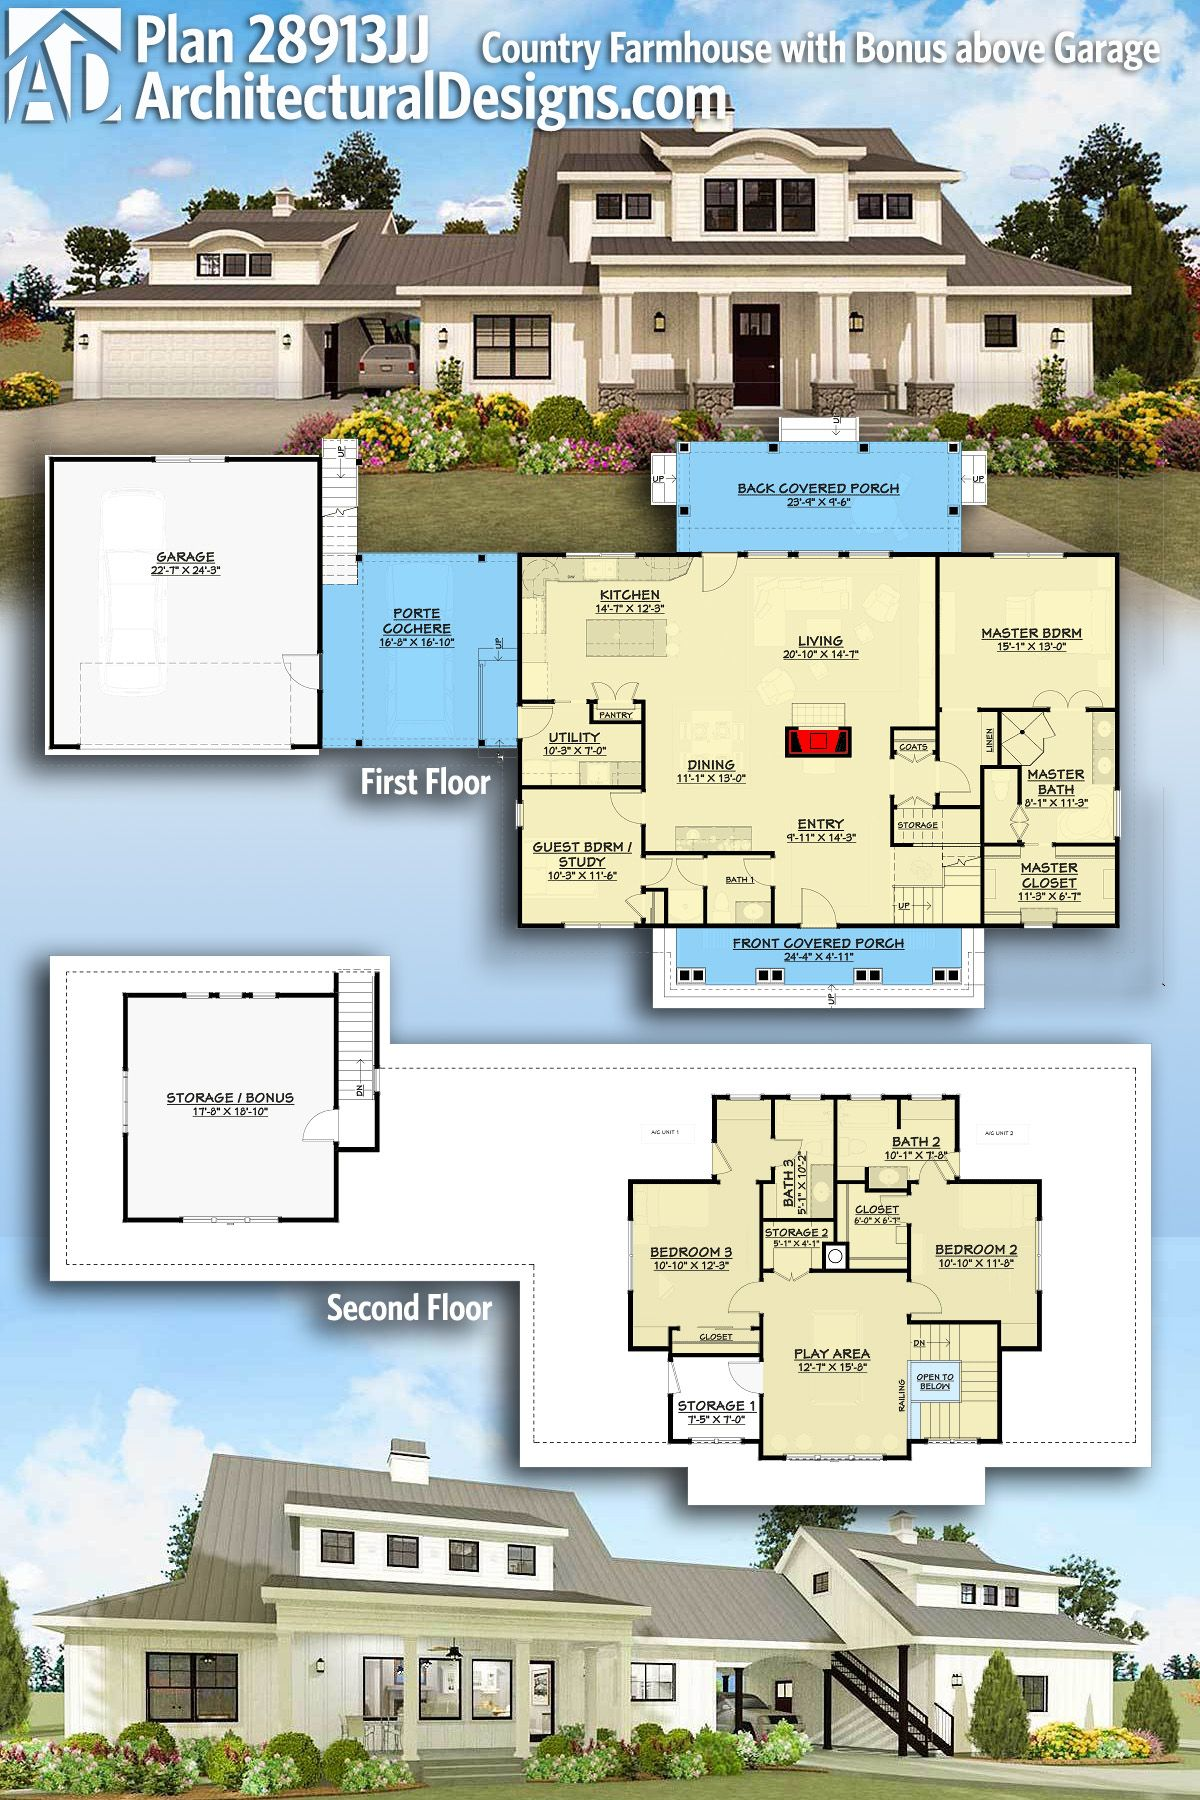 Architectural designs house plan jj gives you to beds